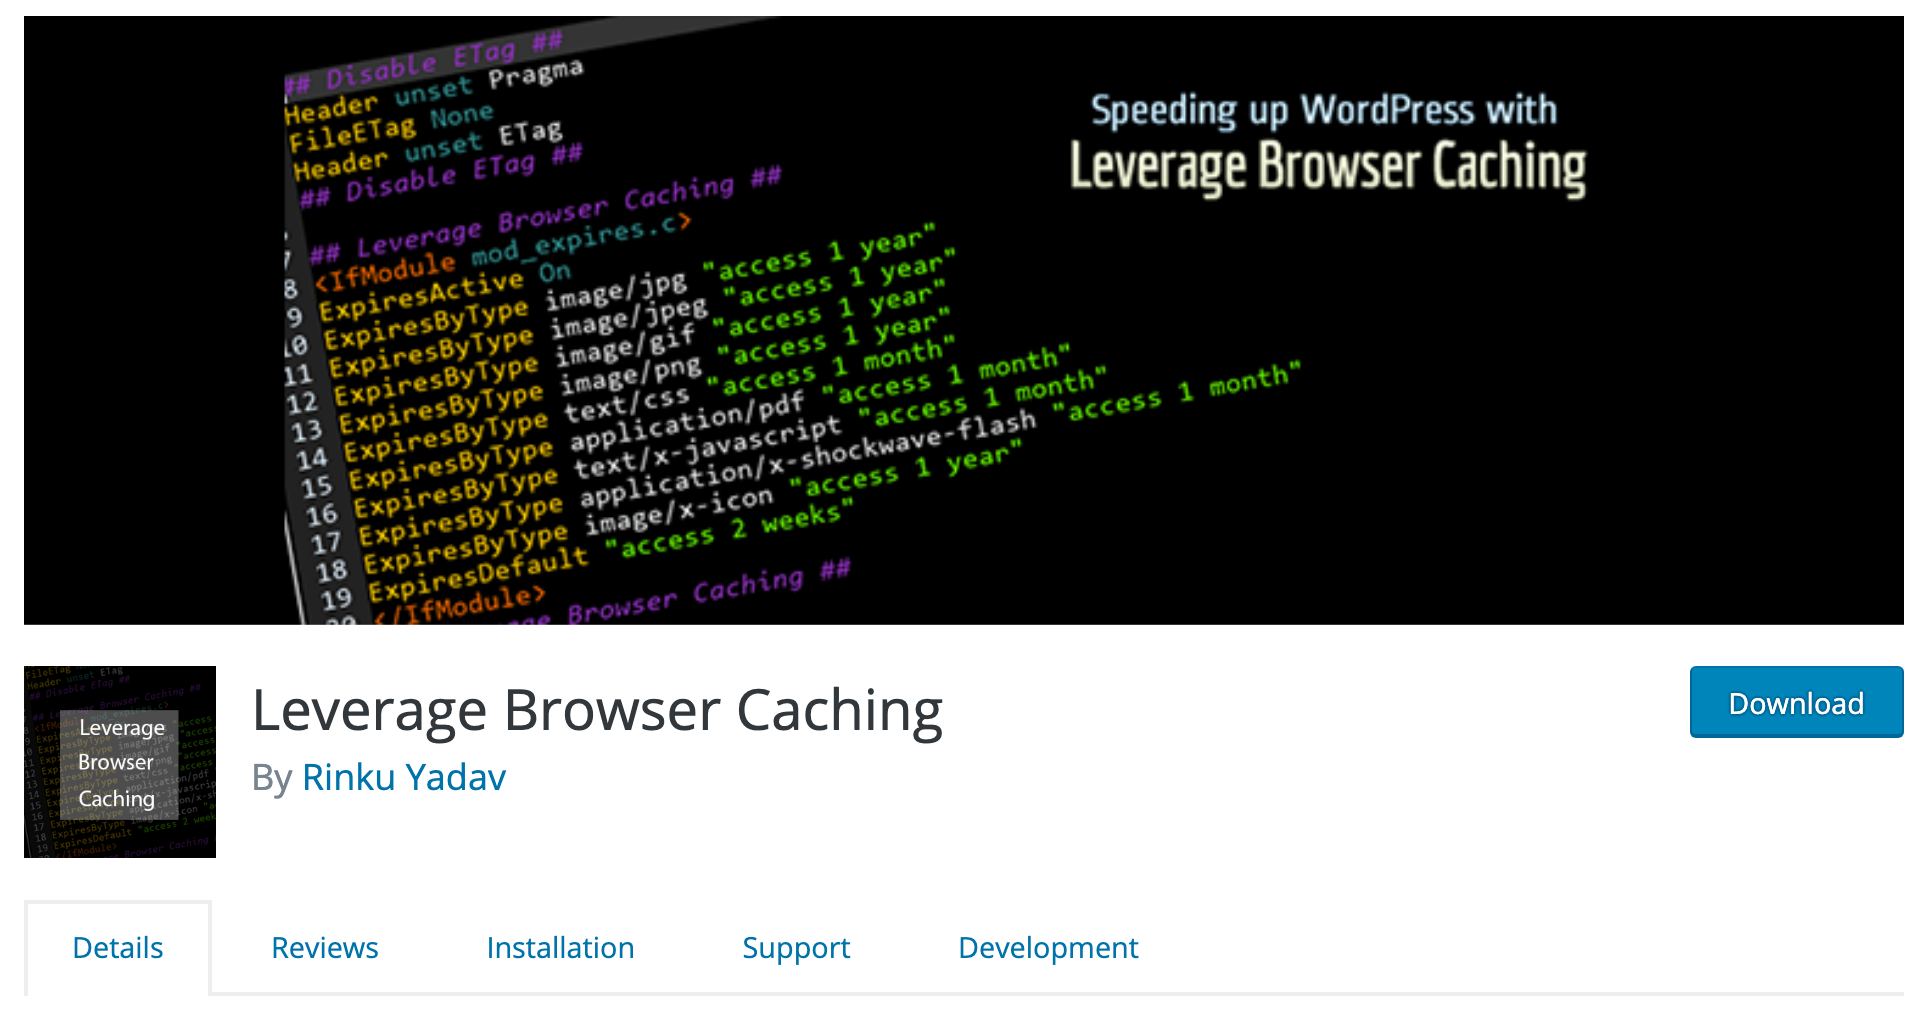 Leverage Browser Caching plugin from WordPress.org